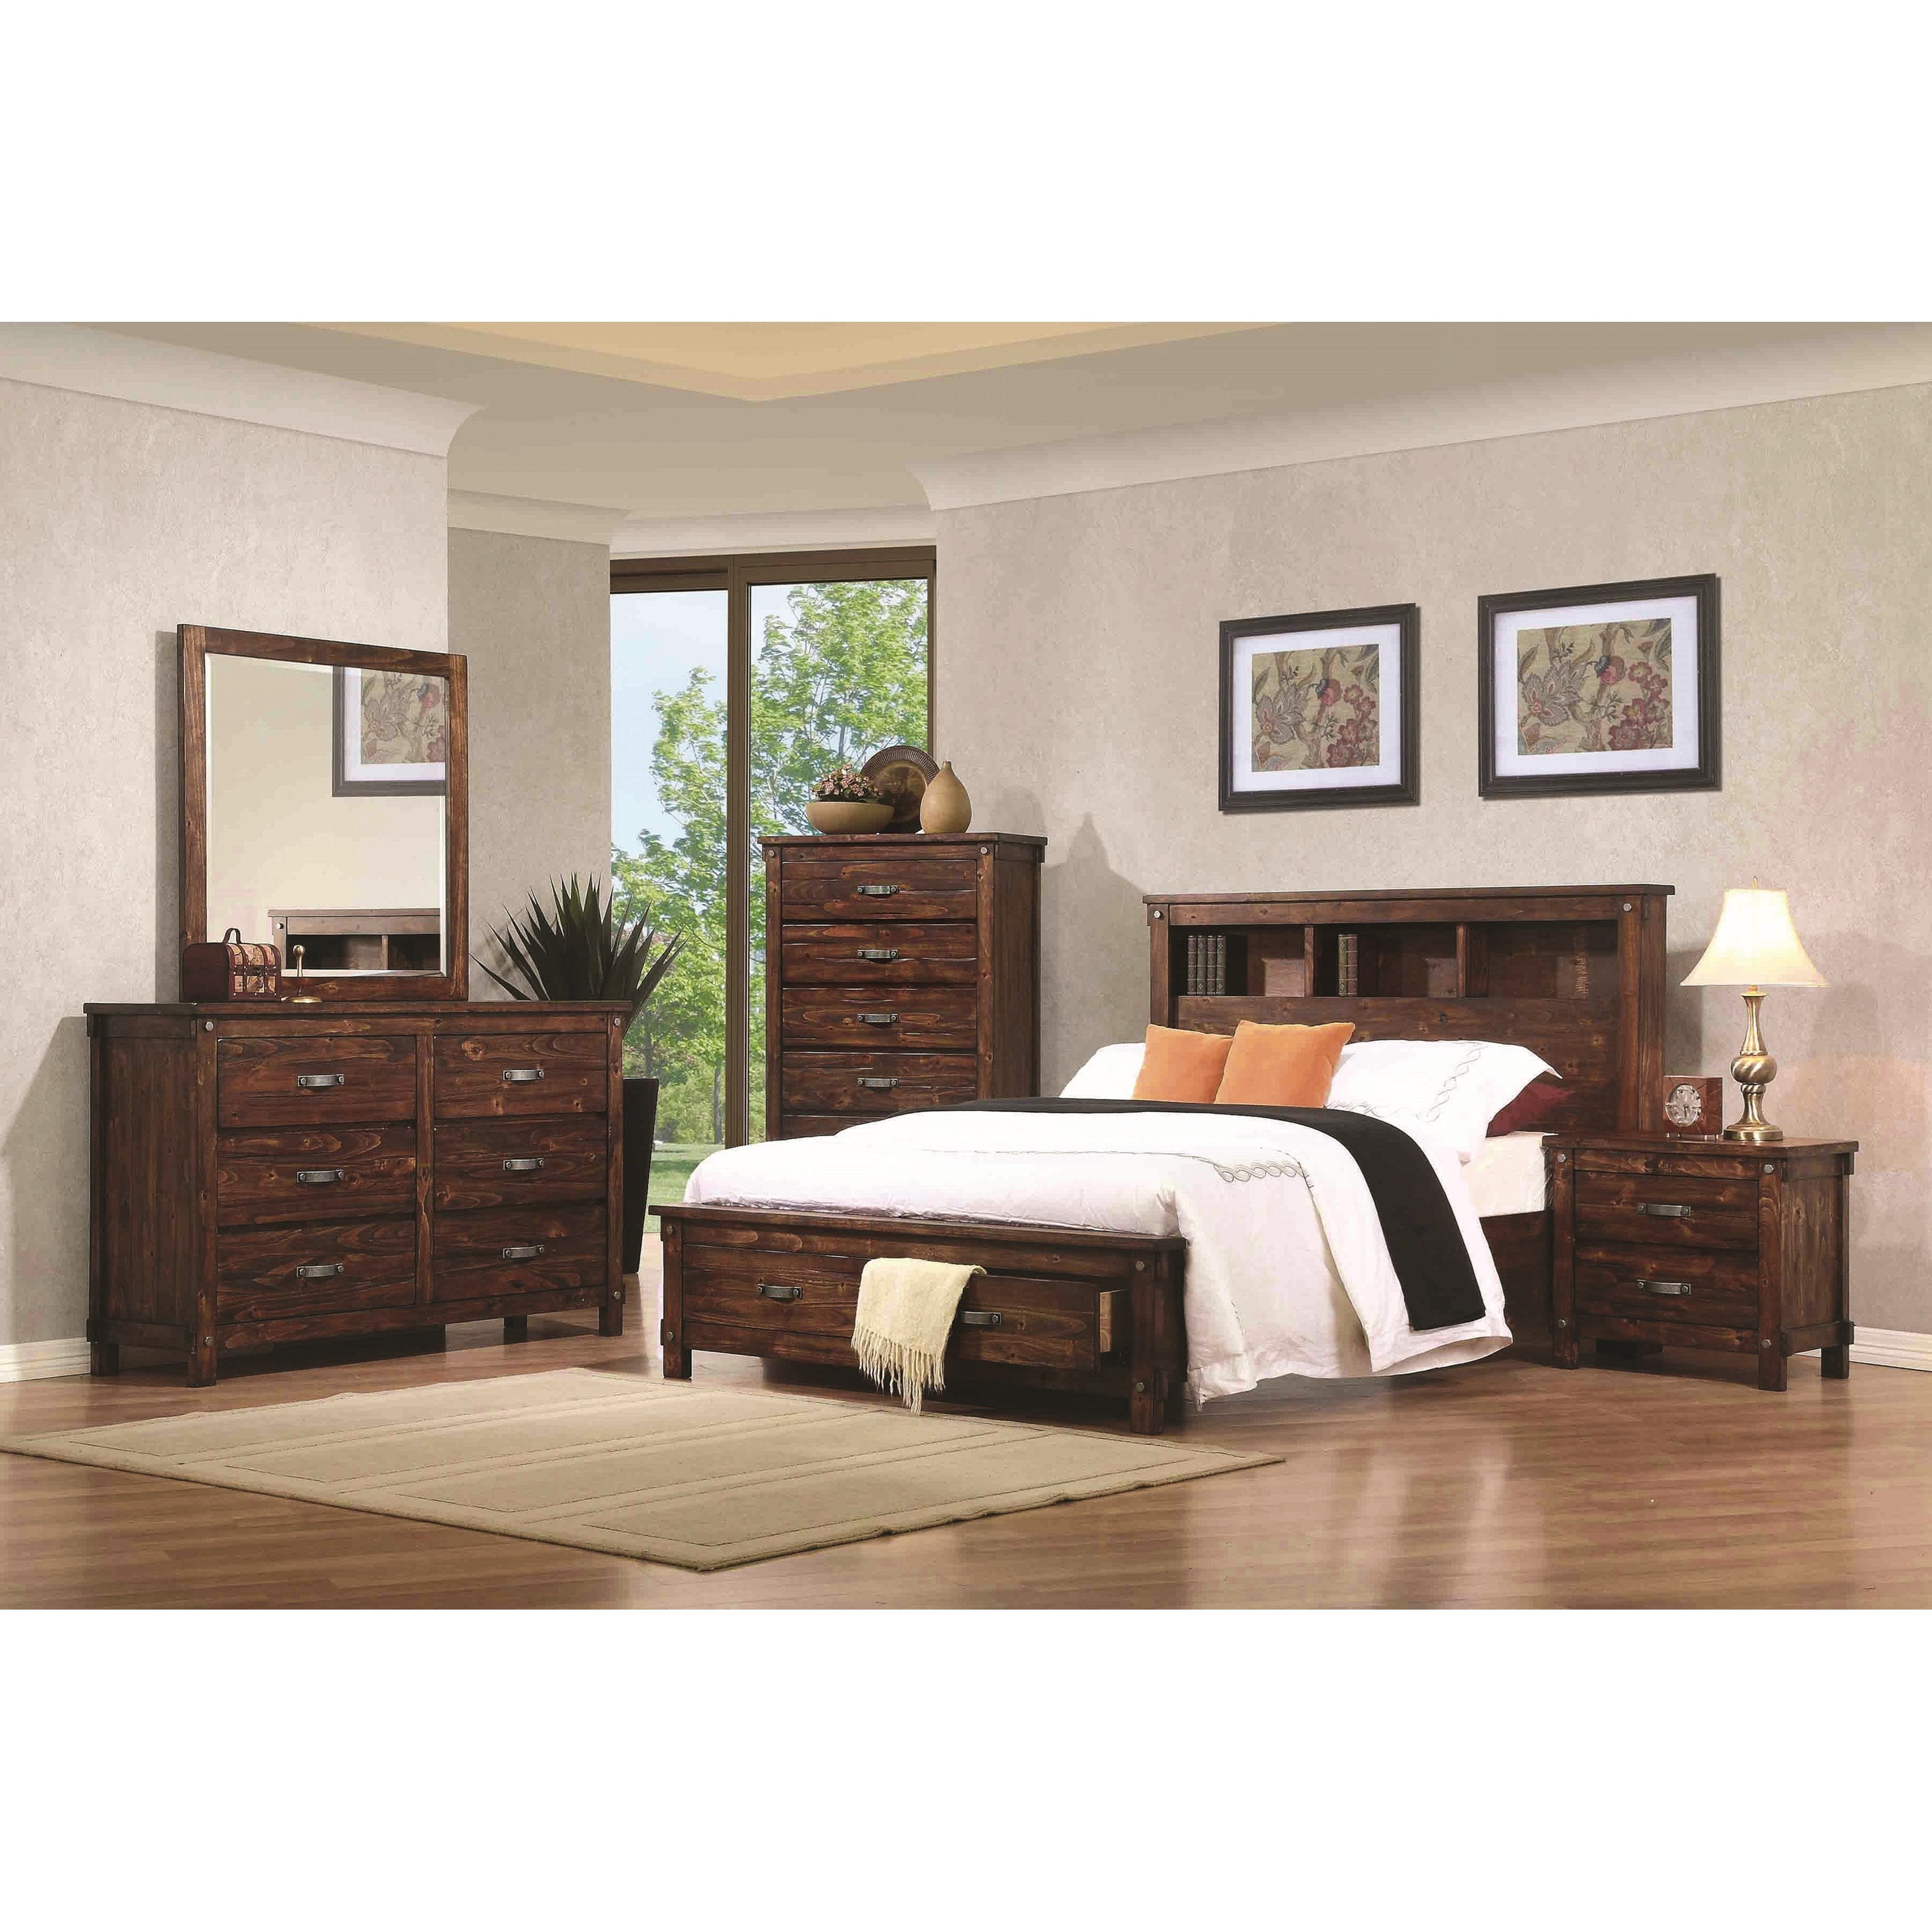 Coaster noble queen bedroom group value city furniture for Bedroom furniture groups